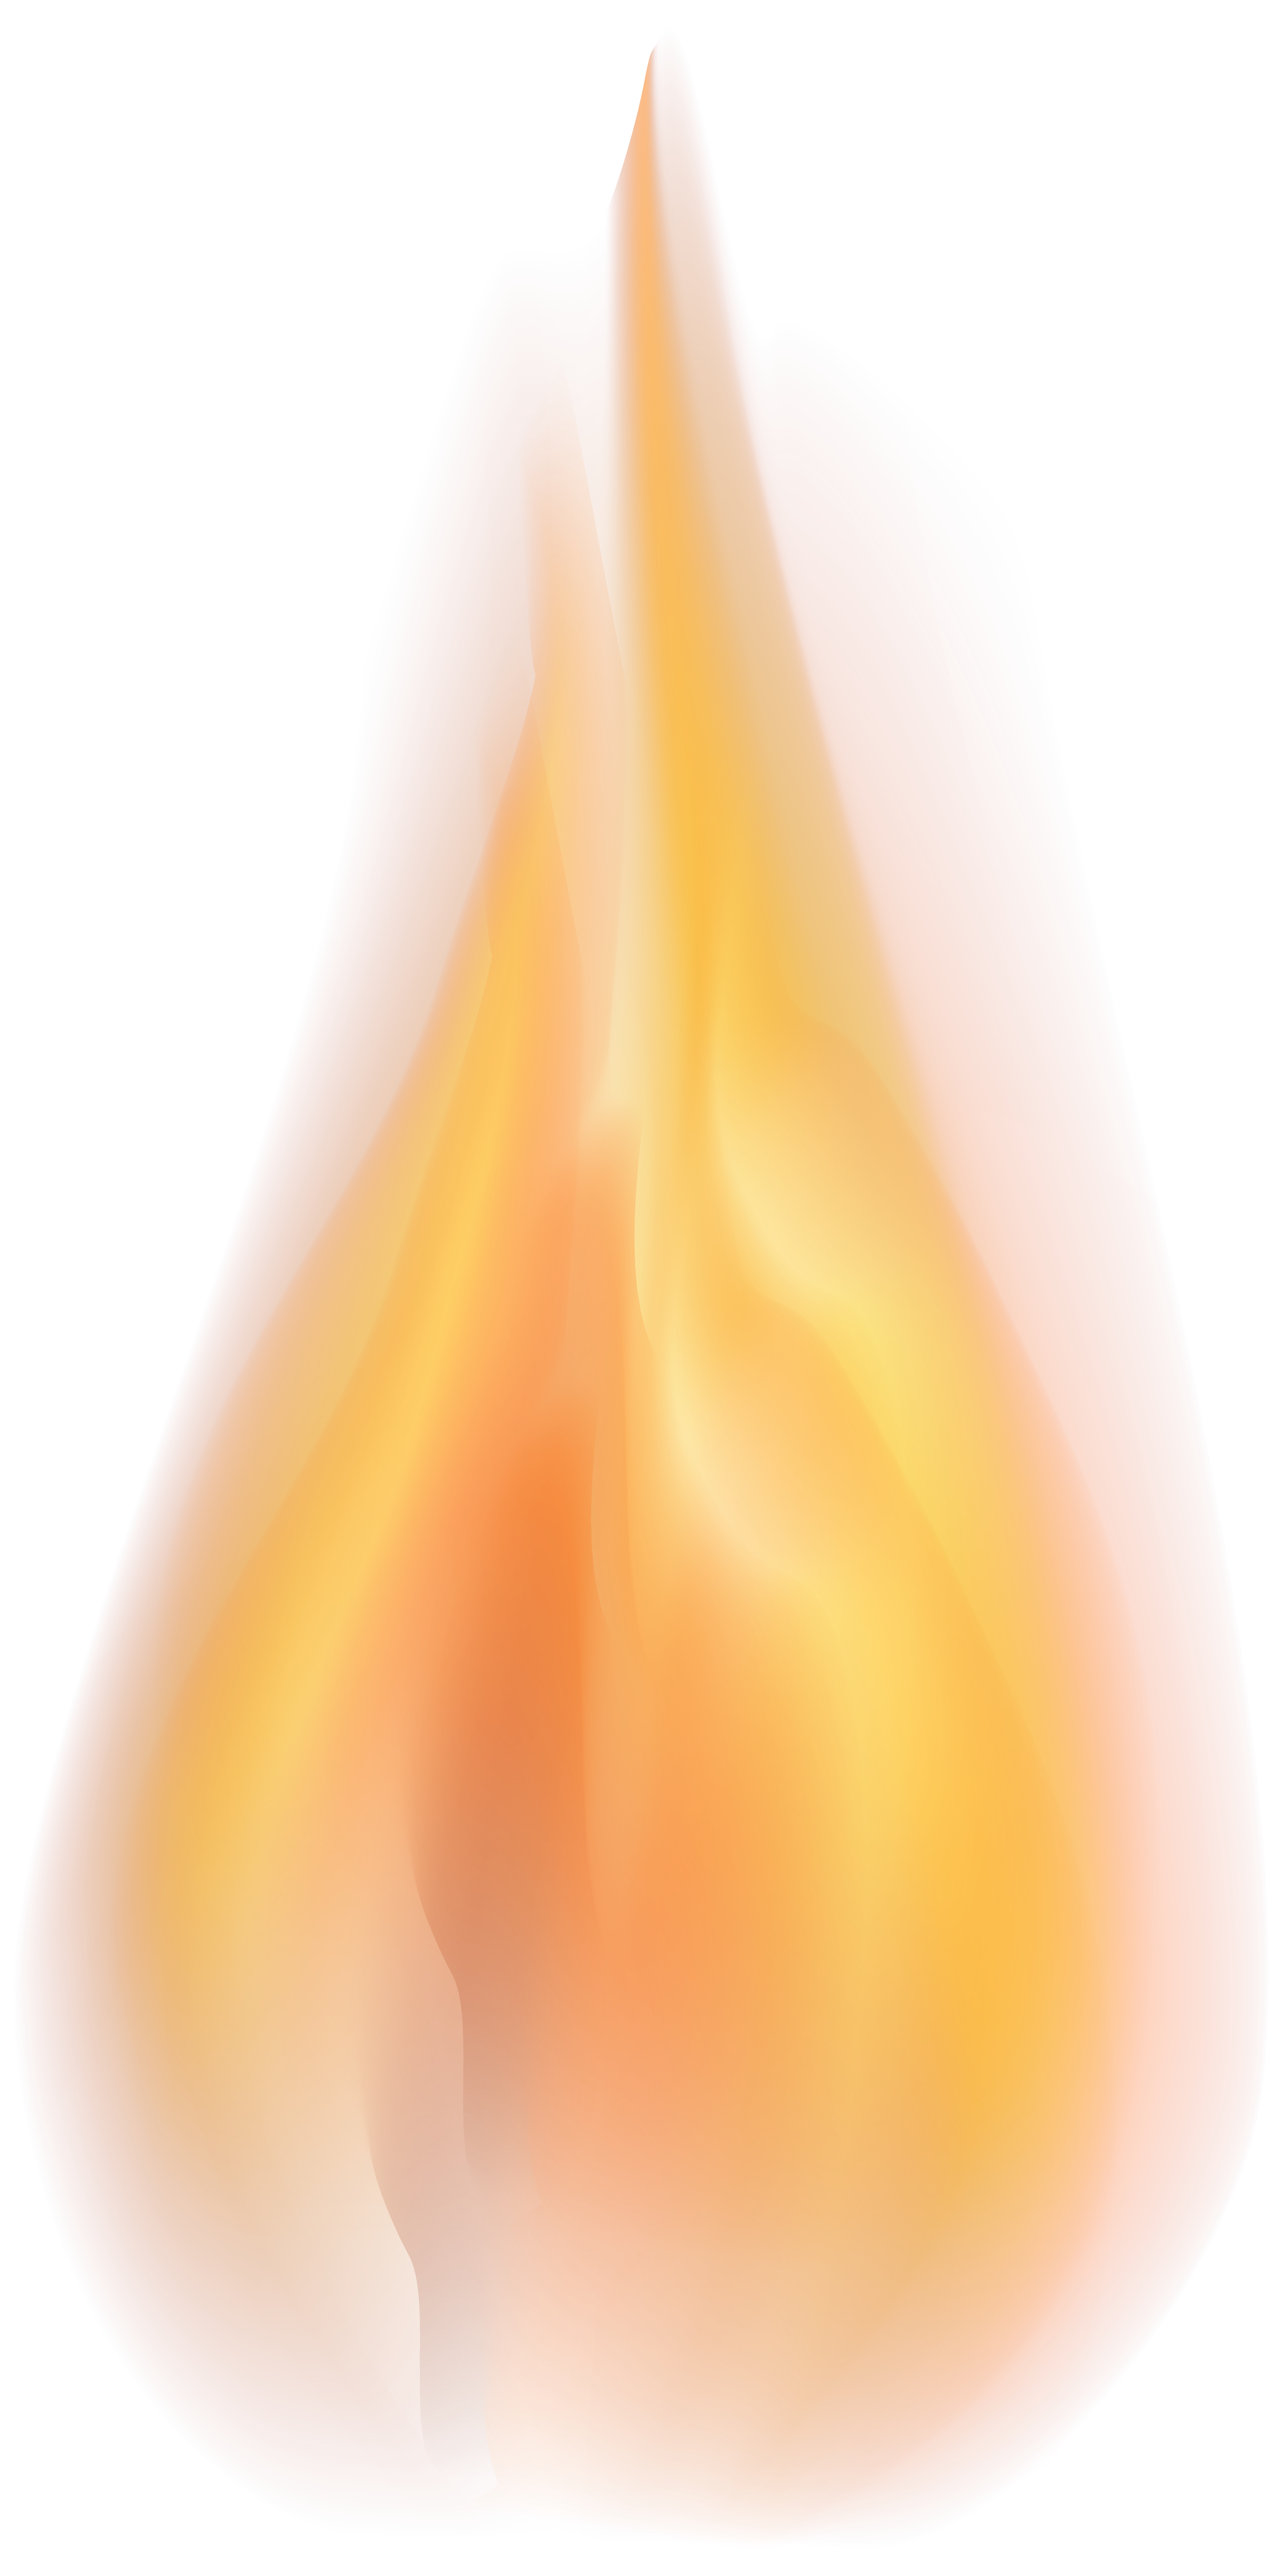 Fire clip art png. Flame transparent image gallery